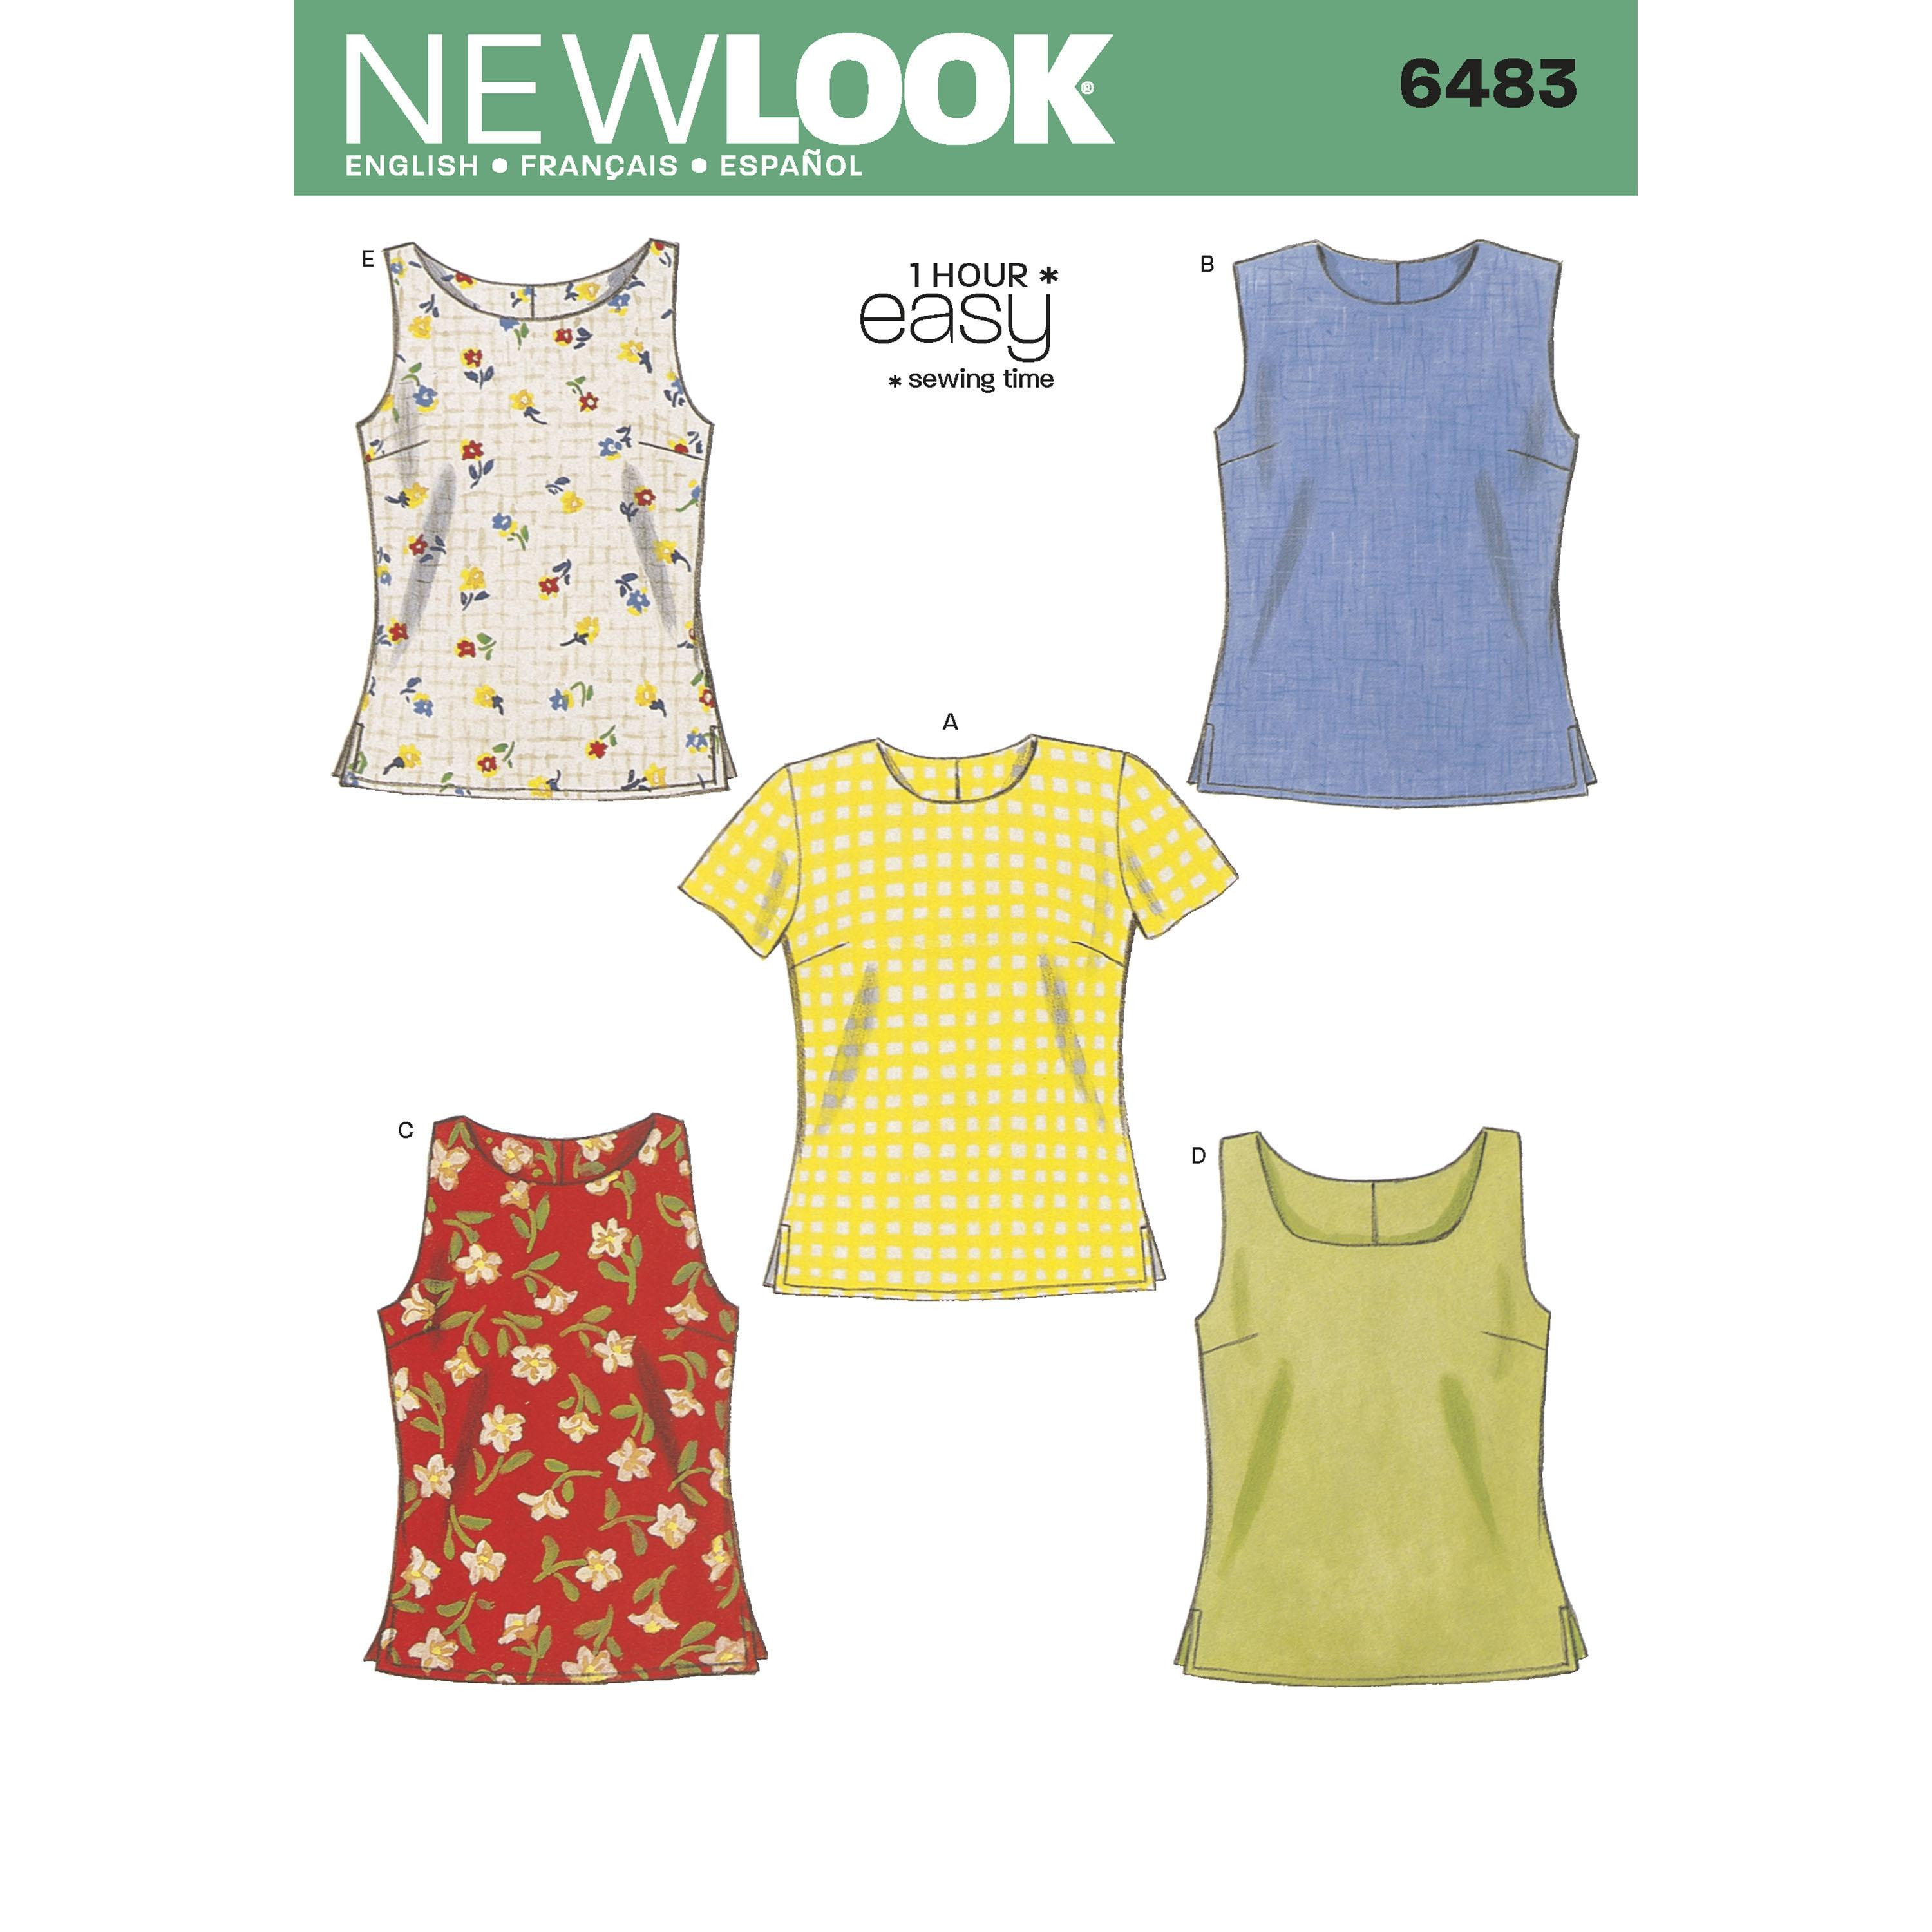 NewLook N6483 Misses Tops